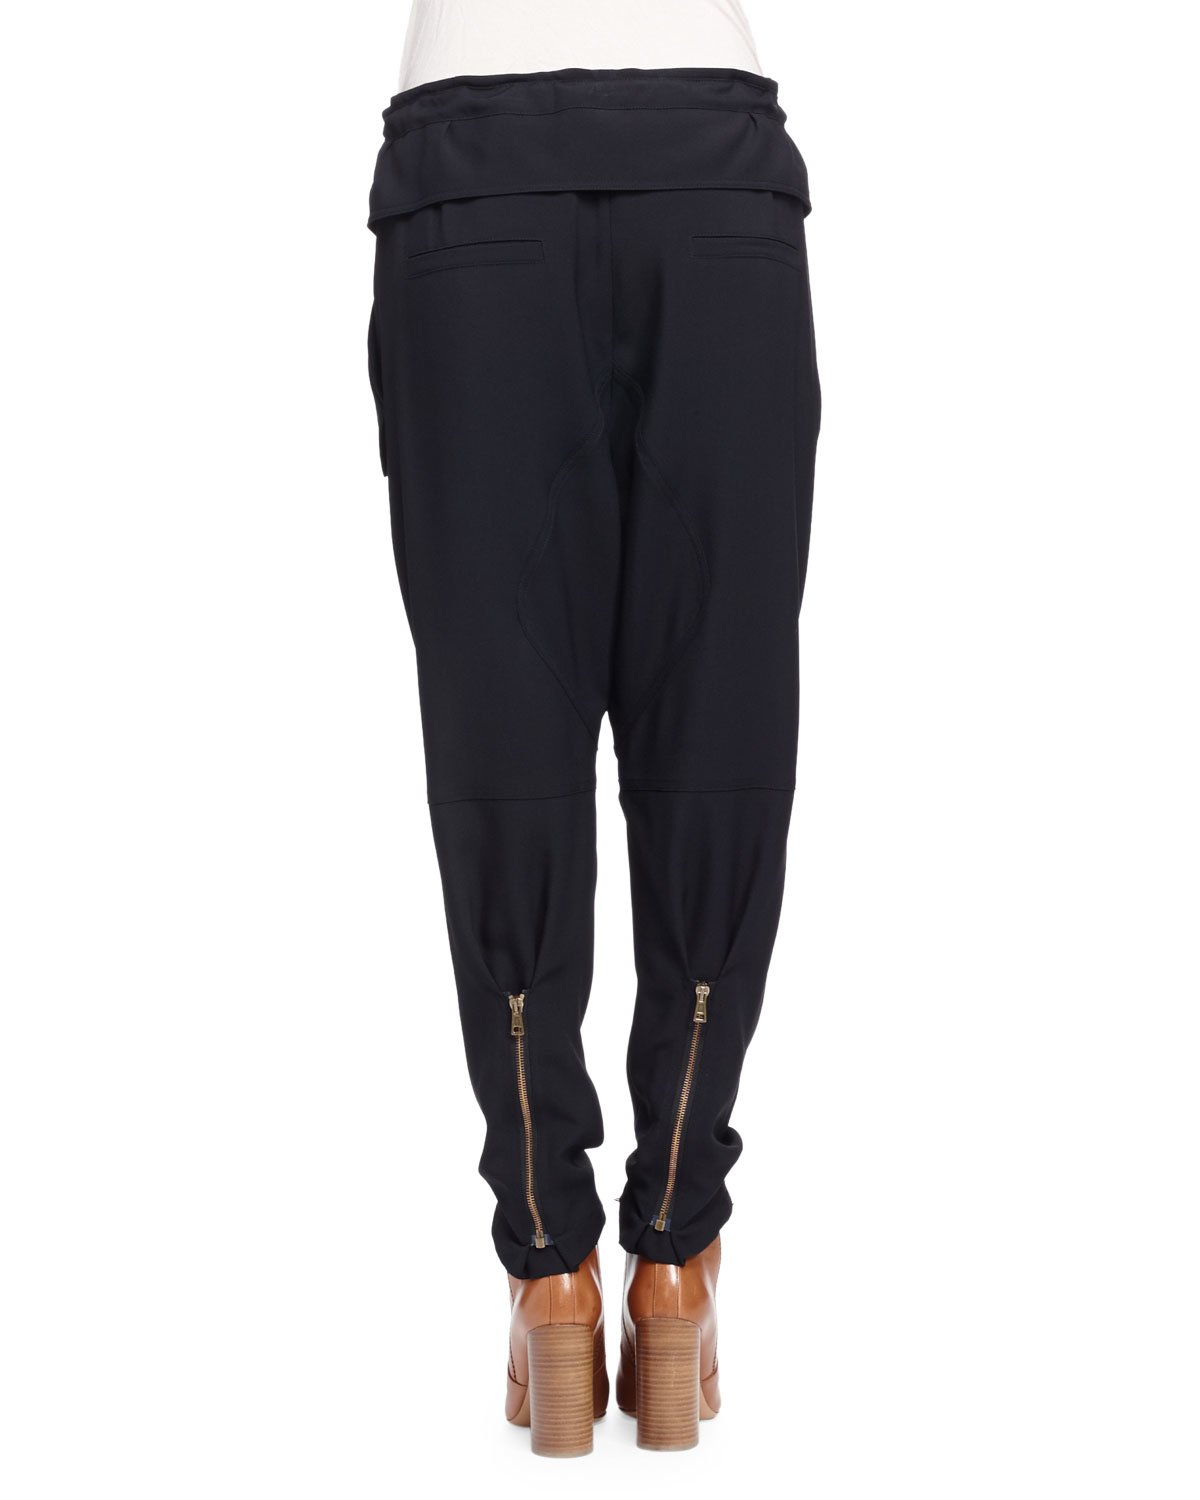 Awesome Apparel Amp Accessories Gt Clothing Gt Pants Gt Linen Pants